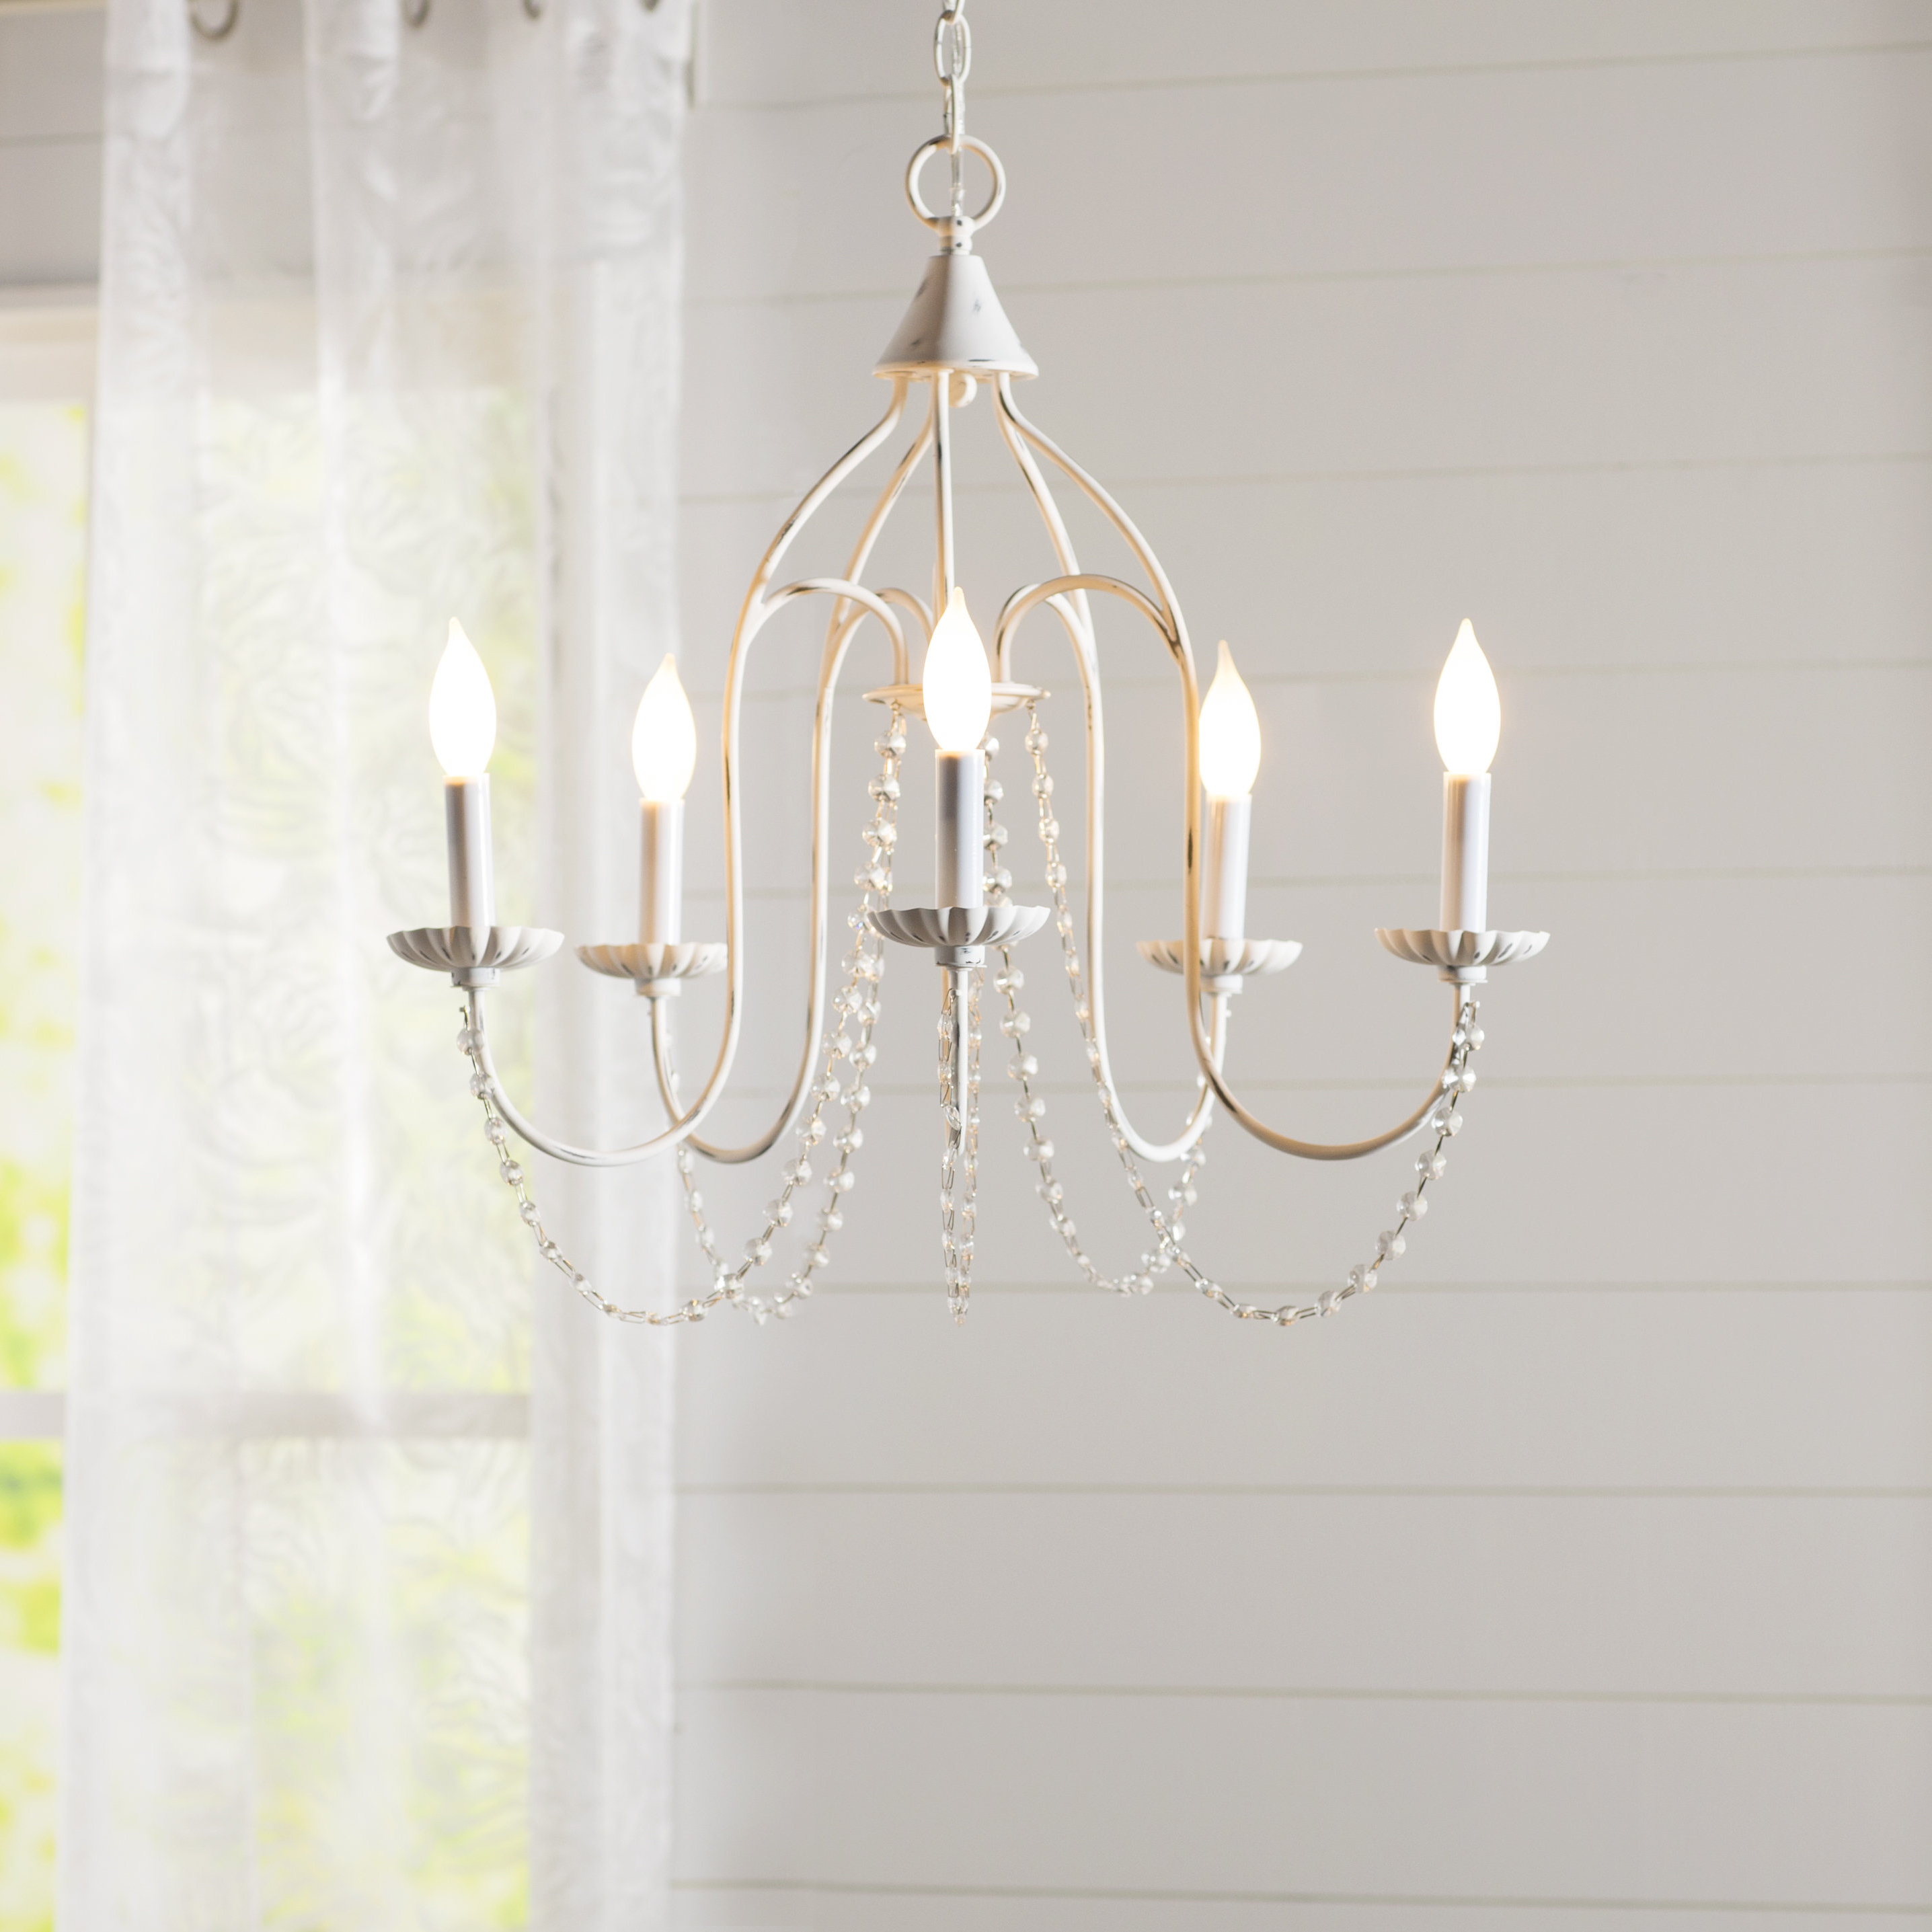 Best And Newest Blanchette 5 Light Candle Style Chandeliers Throughout Florentina 5 Light Candle Style Chandelier (View 2 of 20)